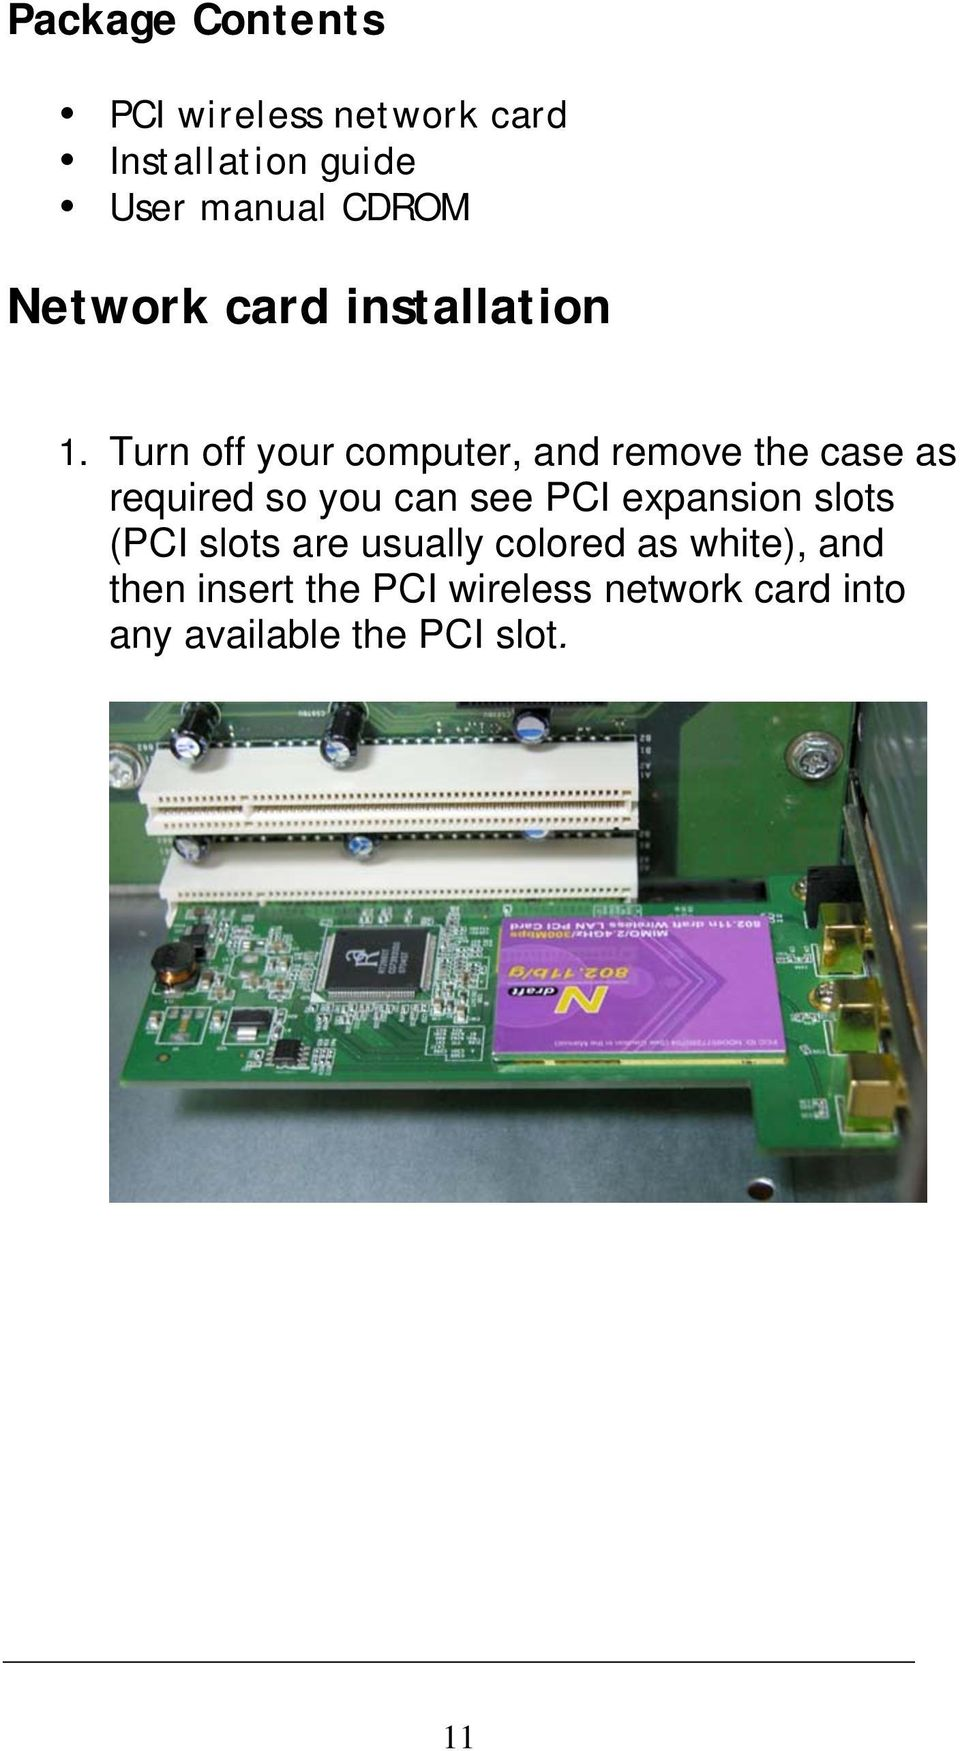 Turn off your computer, and remove the case as required so you can see PCI